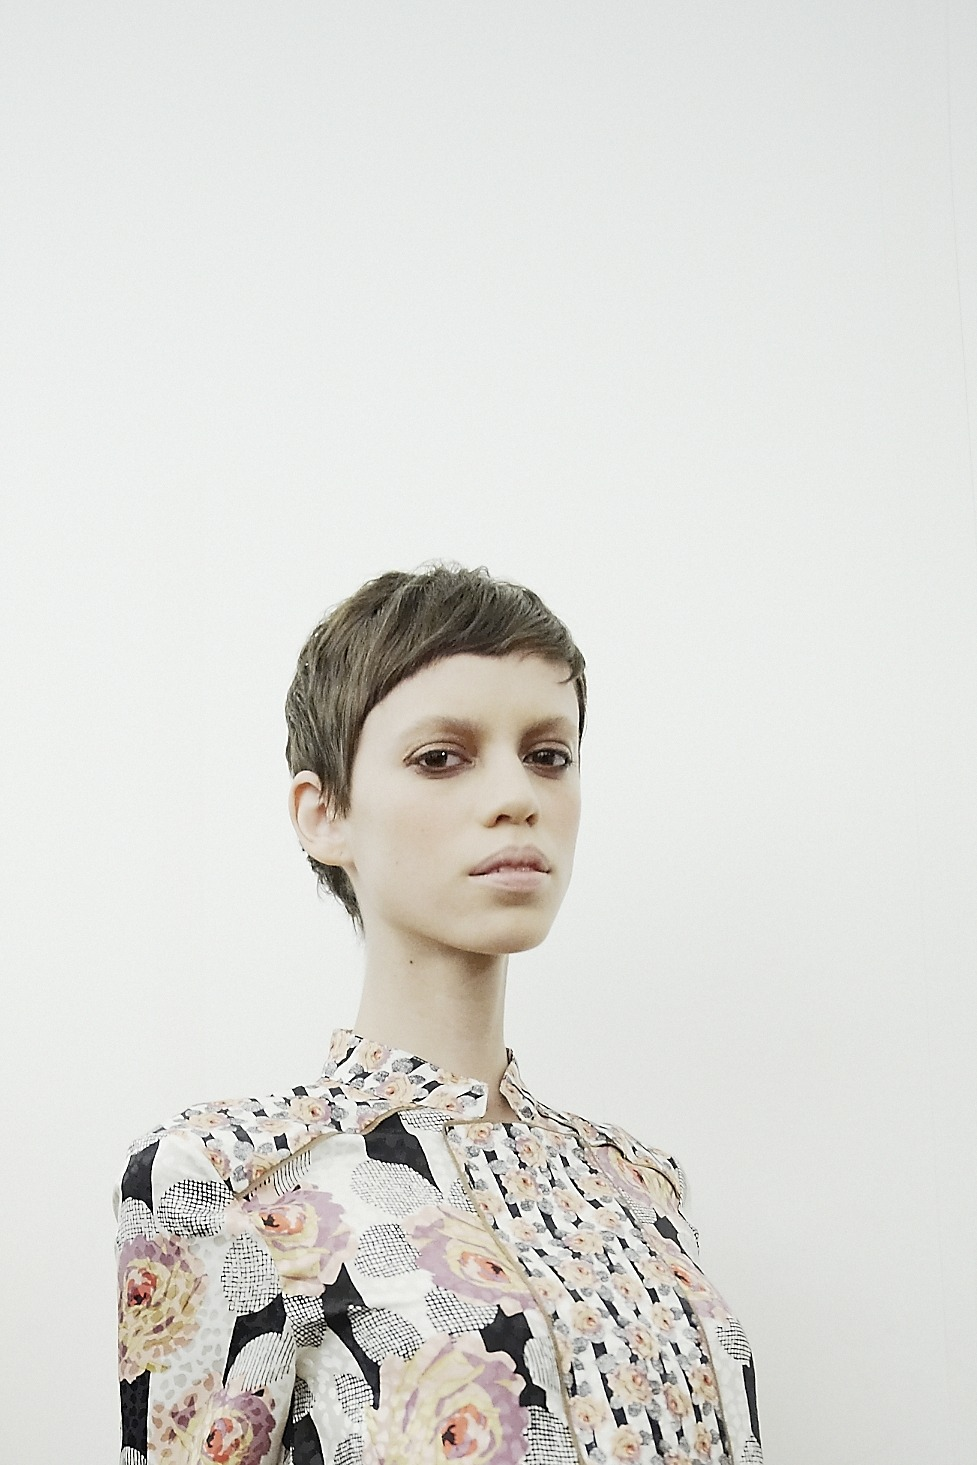 Backstage at Suno - by Cara Stricker